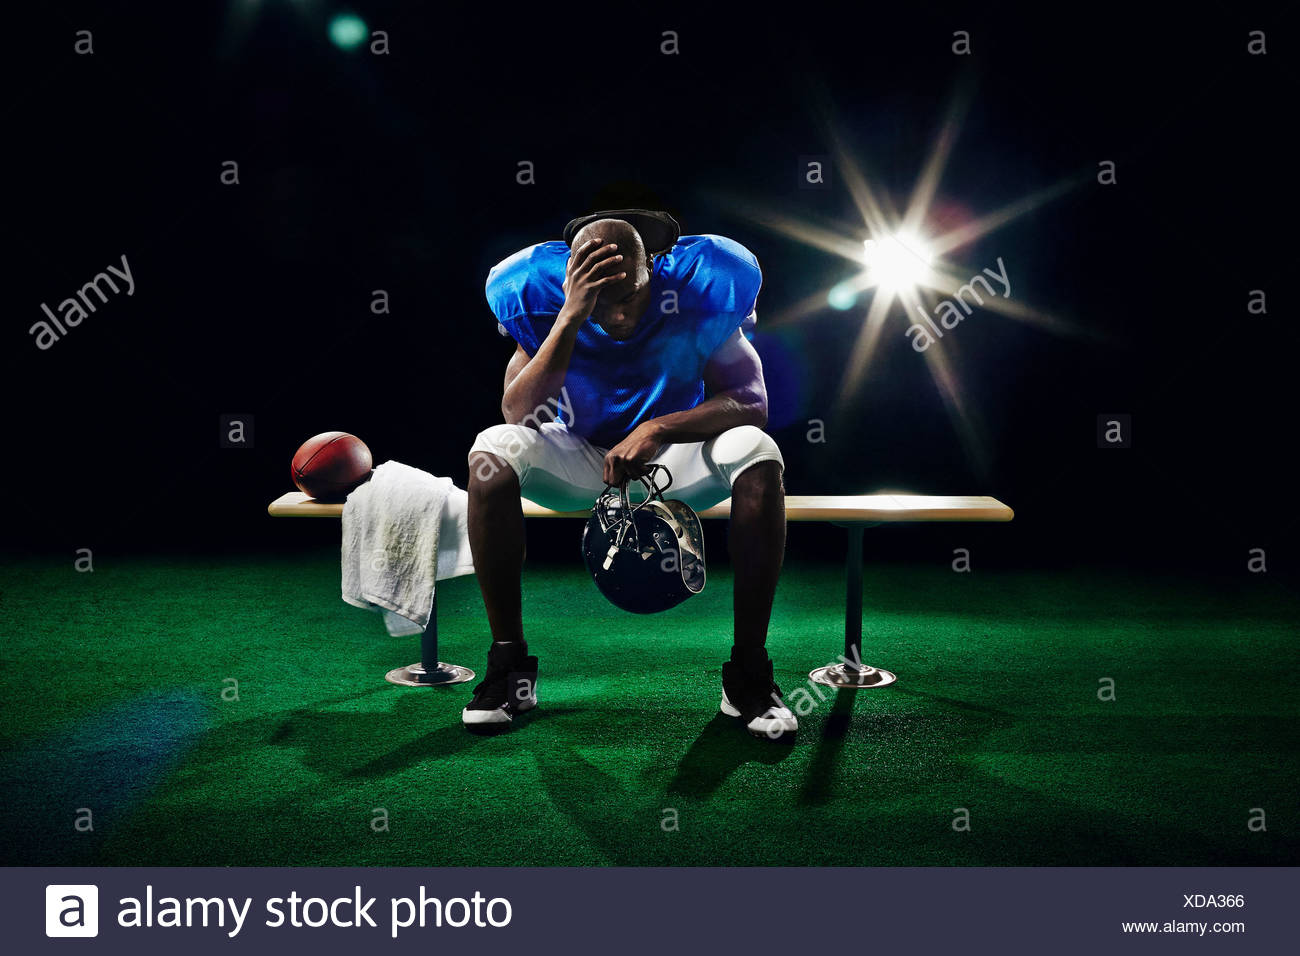 Portrait of american football player with head in hand - Stock Image